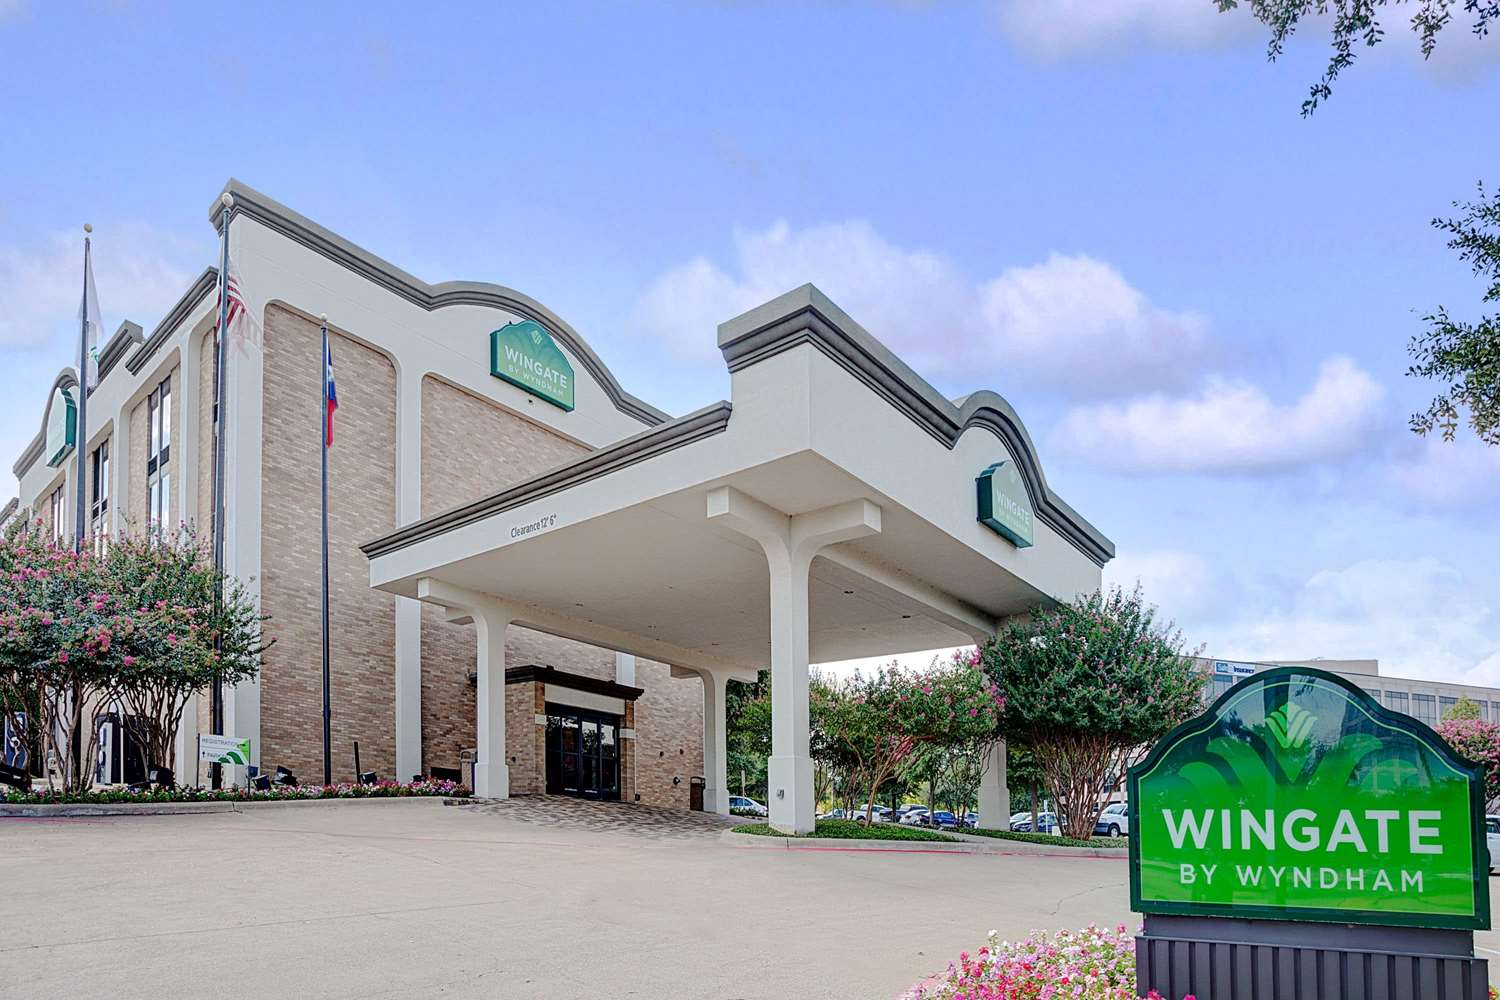 Wingate by Wyndham Hotel Richardson